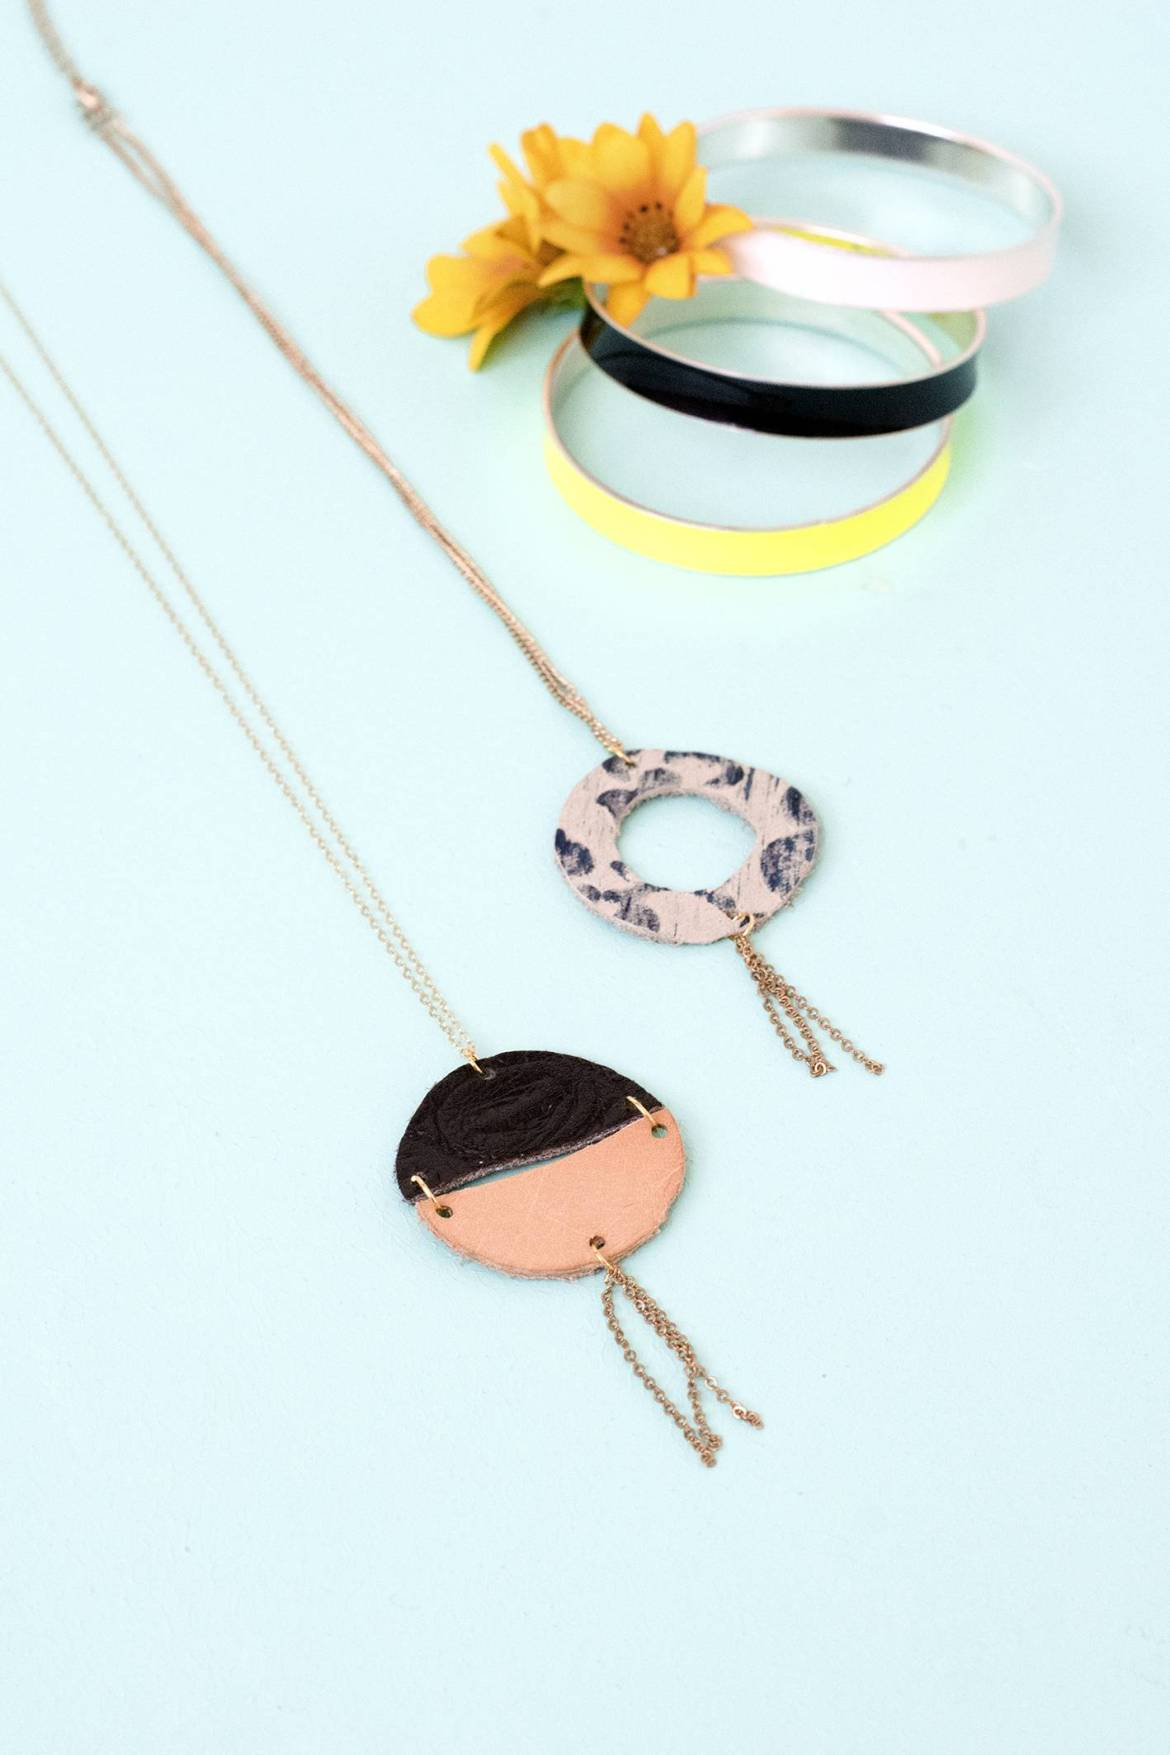 Circular leather pendants on a chain